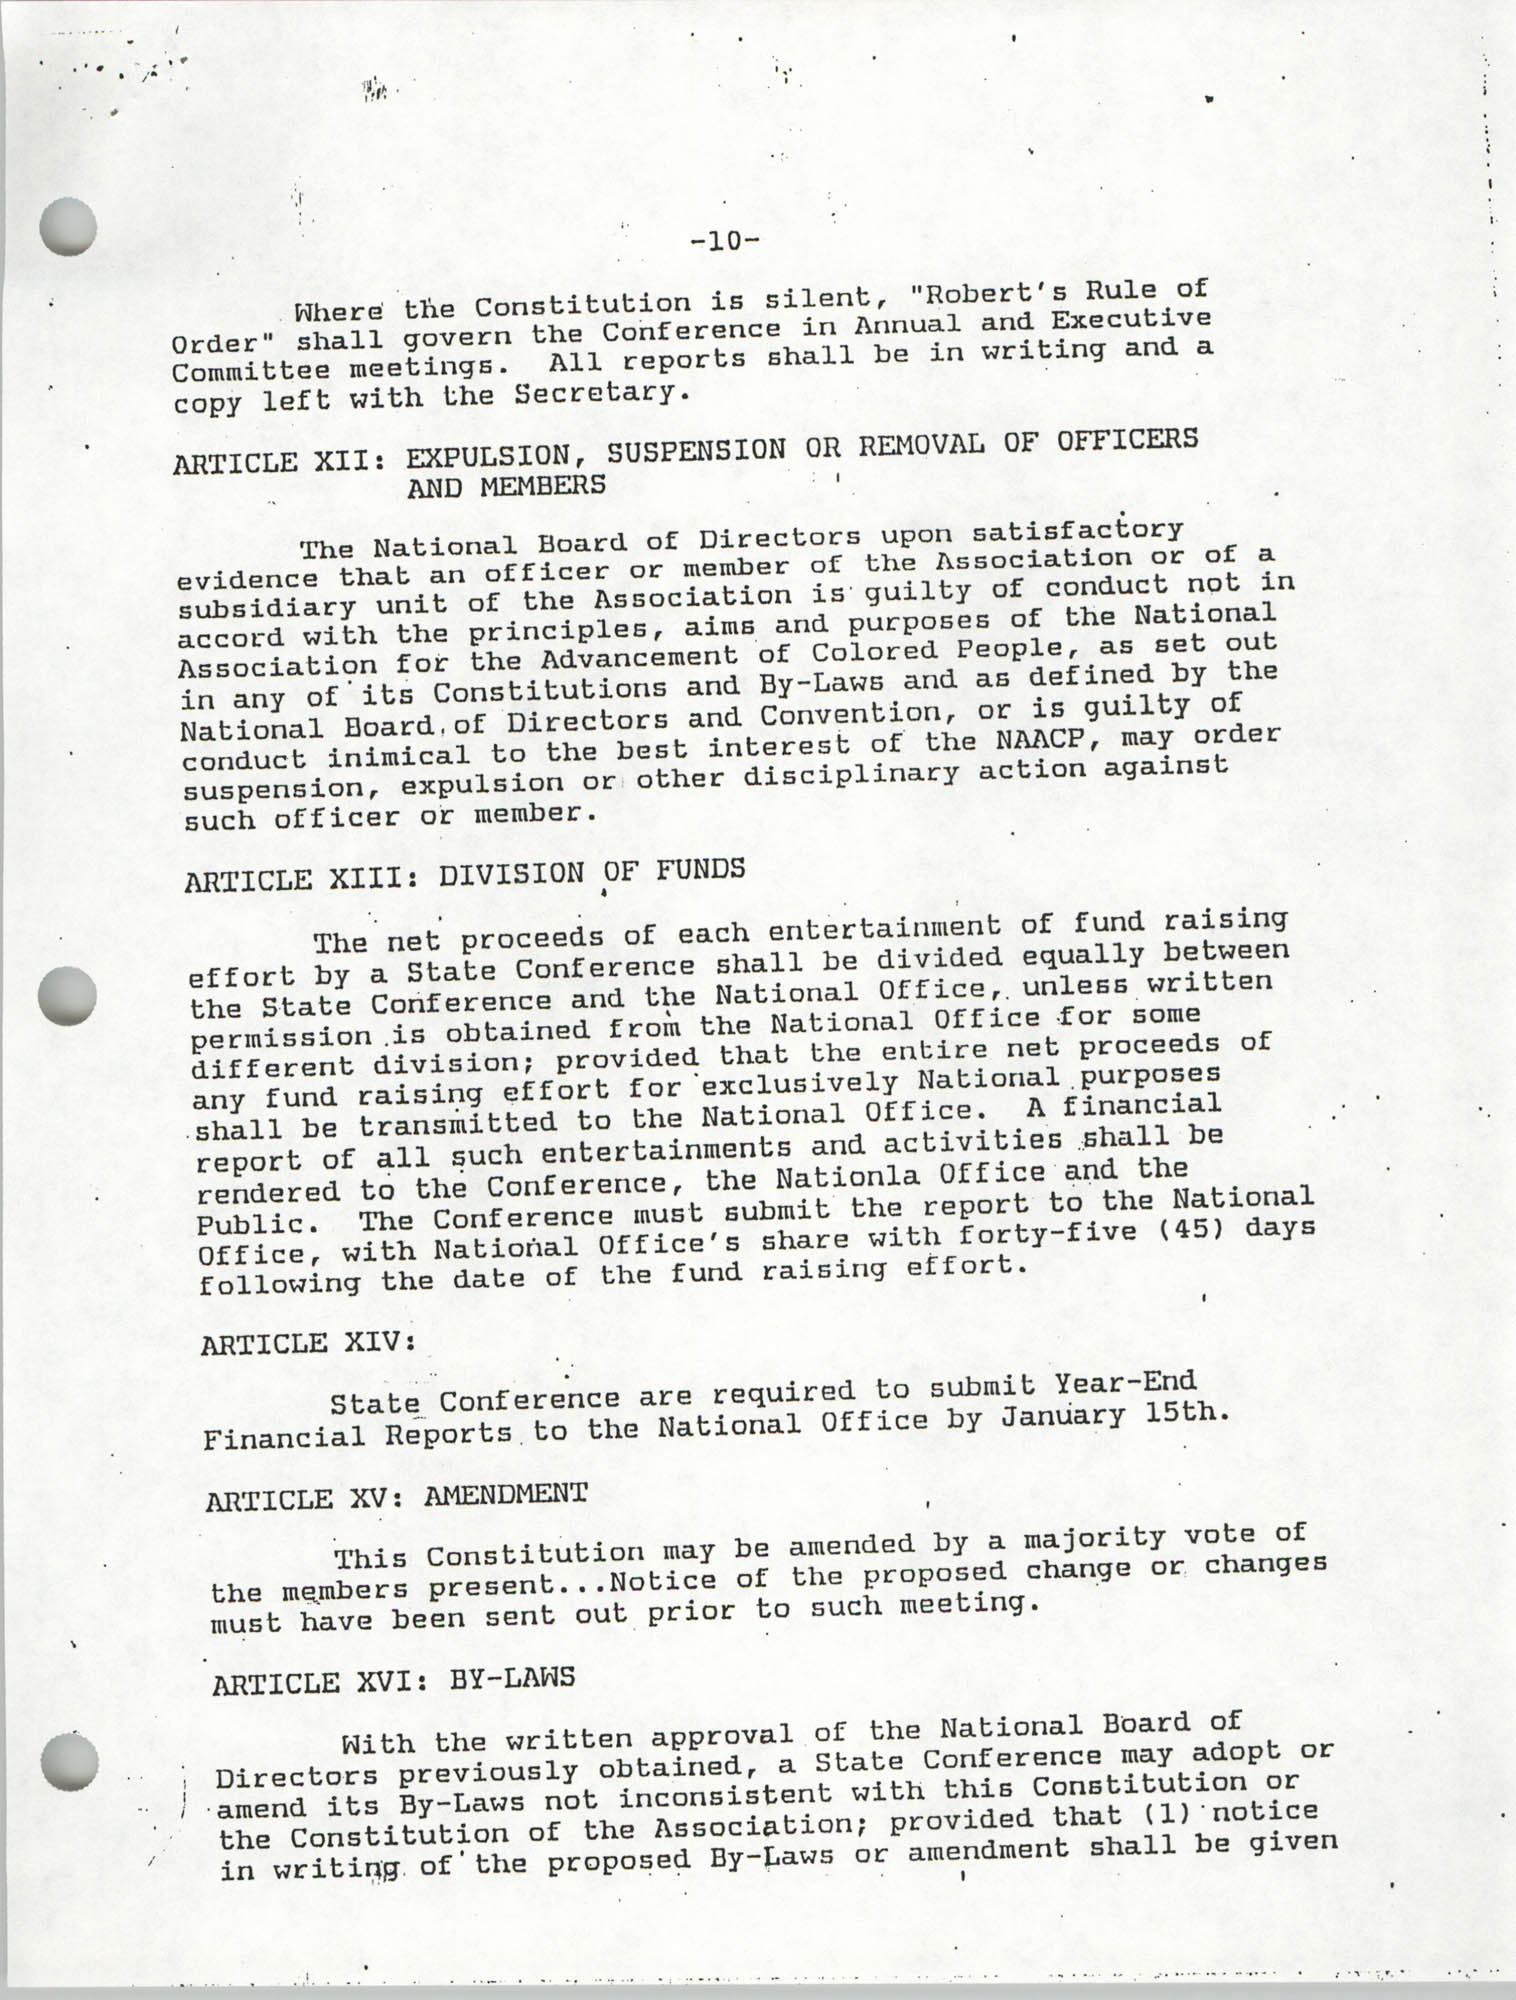 Constitution for State Conferences of the NAAC, Page 10